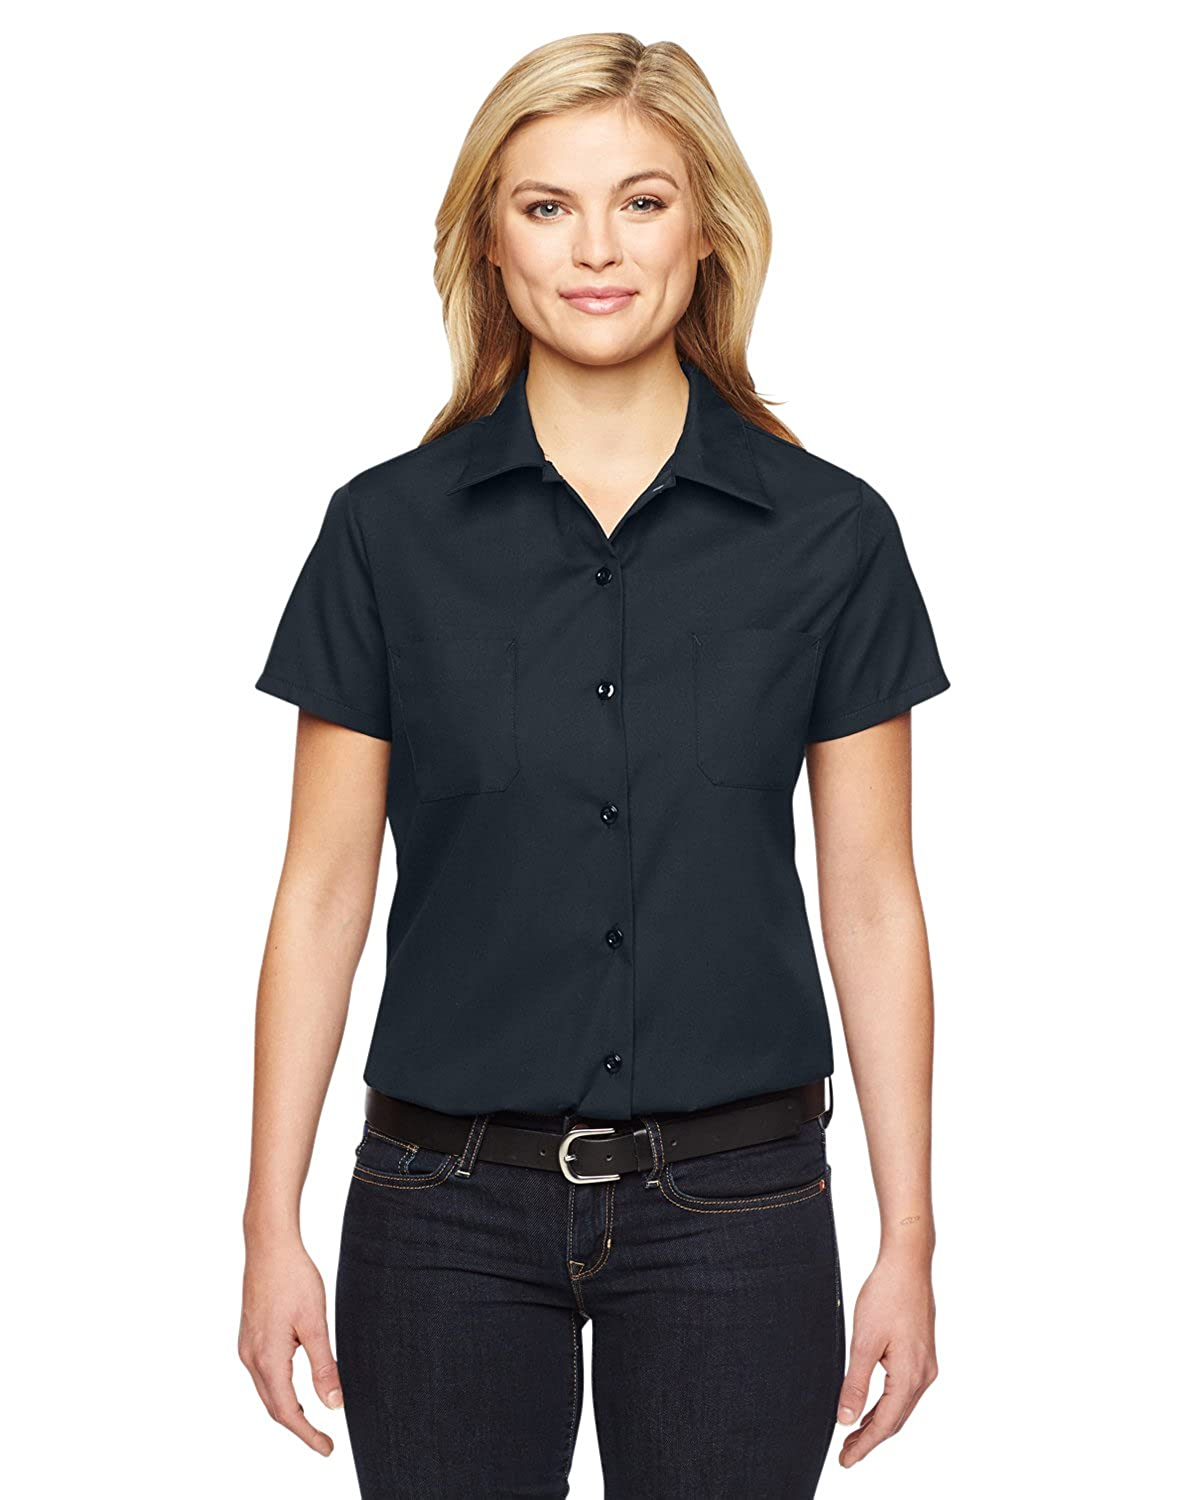 Dickies Women's Industrial Short Sleeve Work Shirt M48146